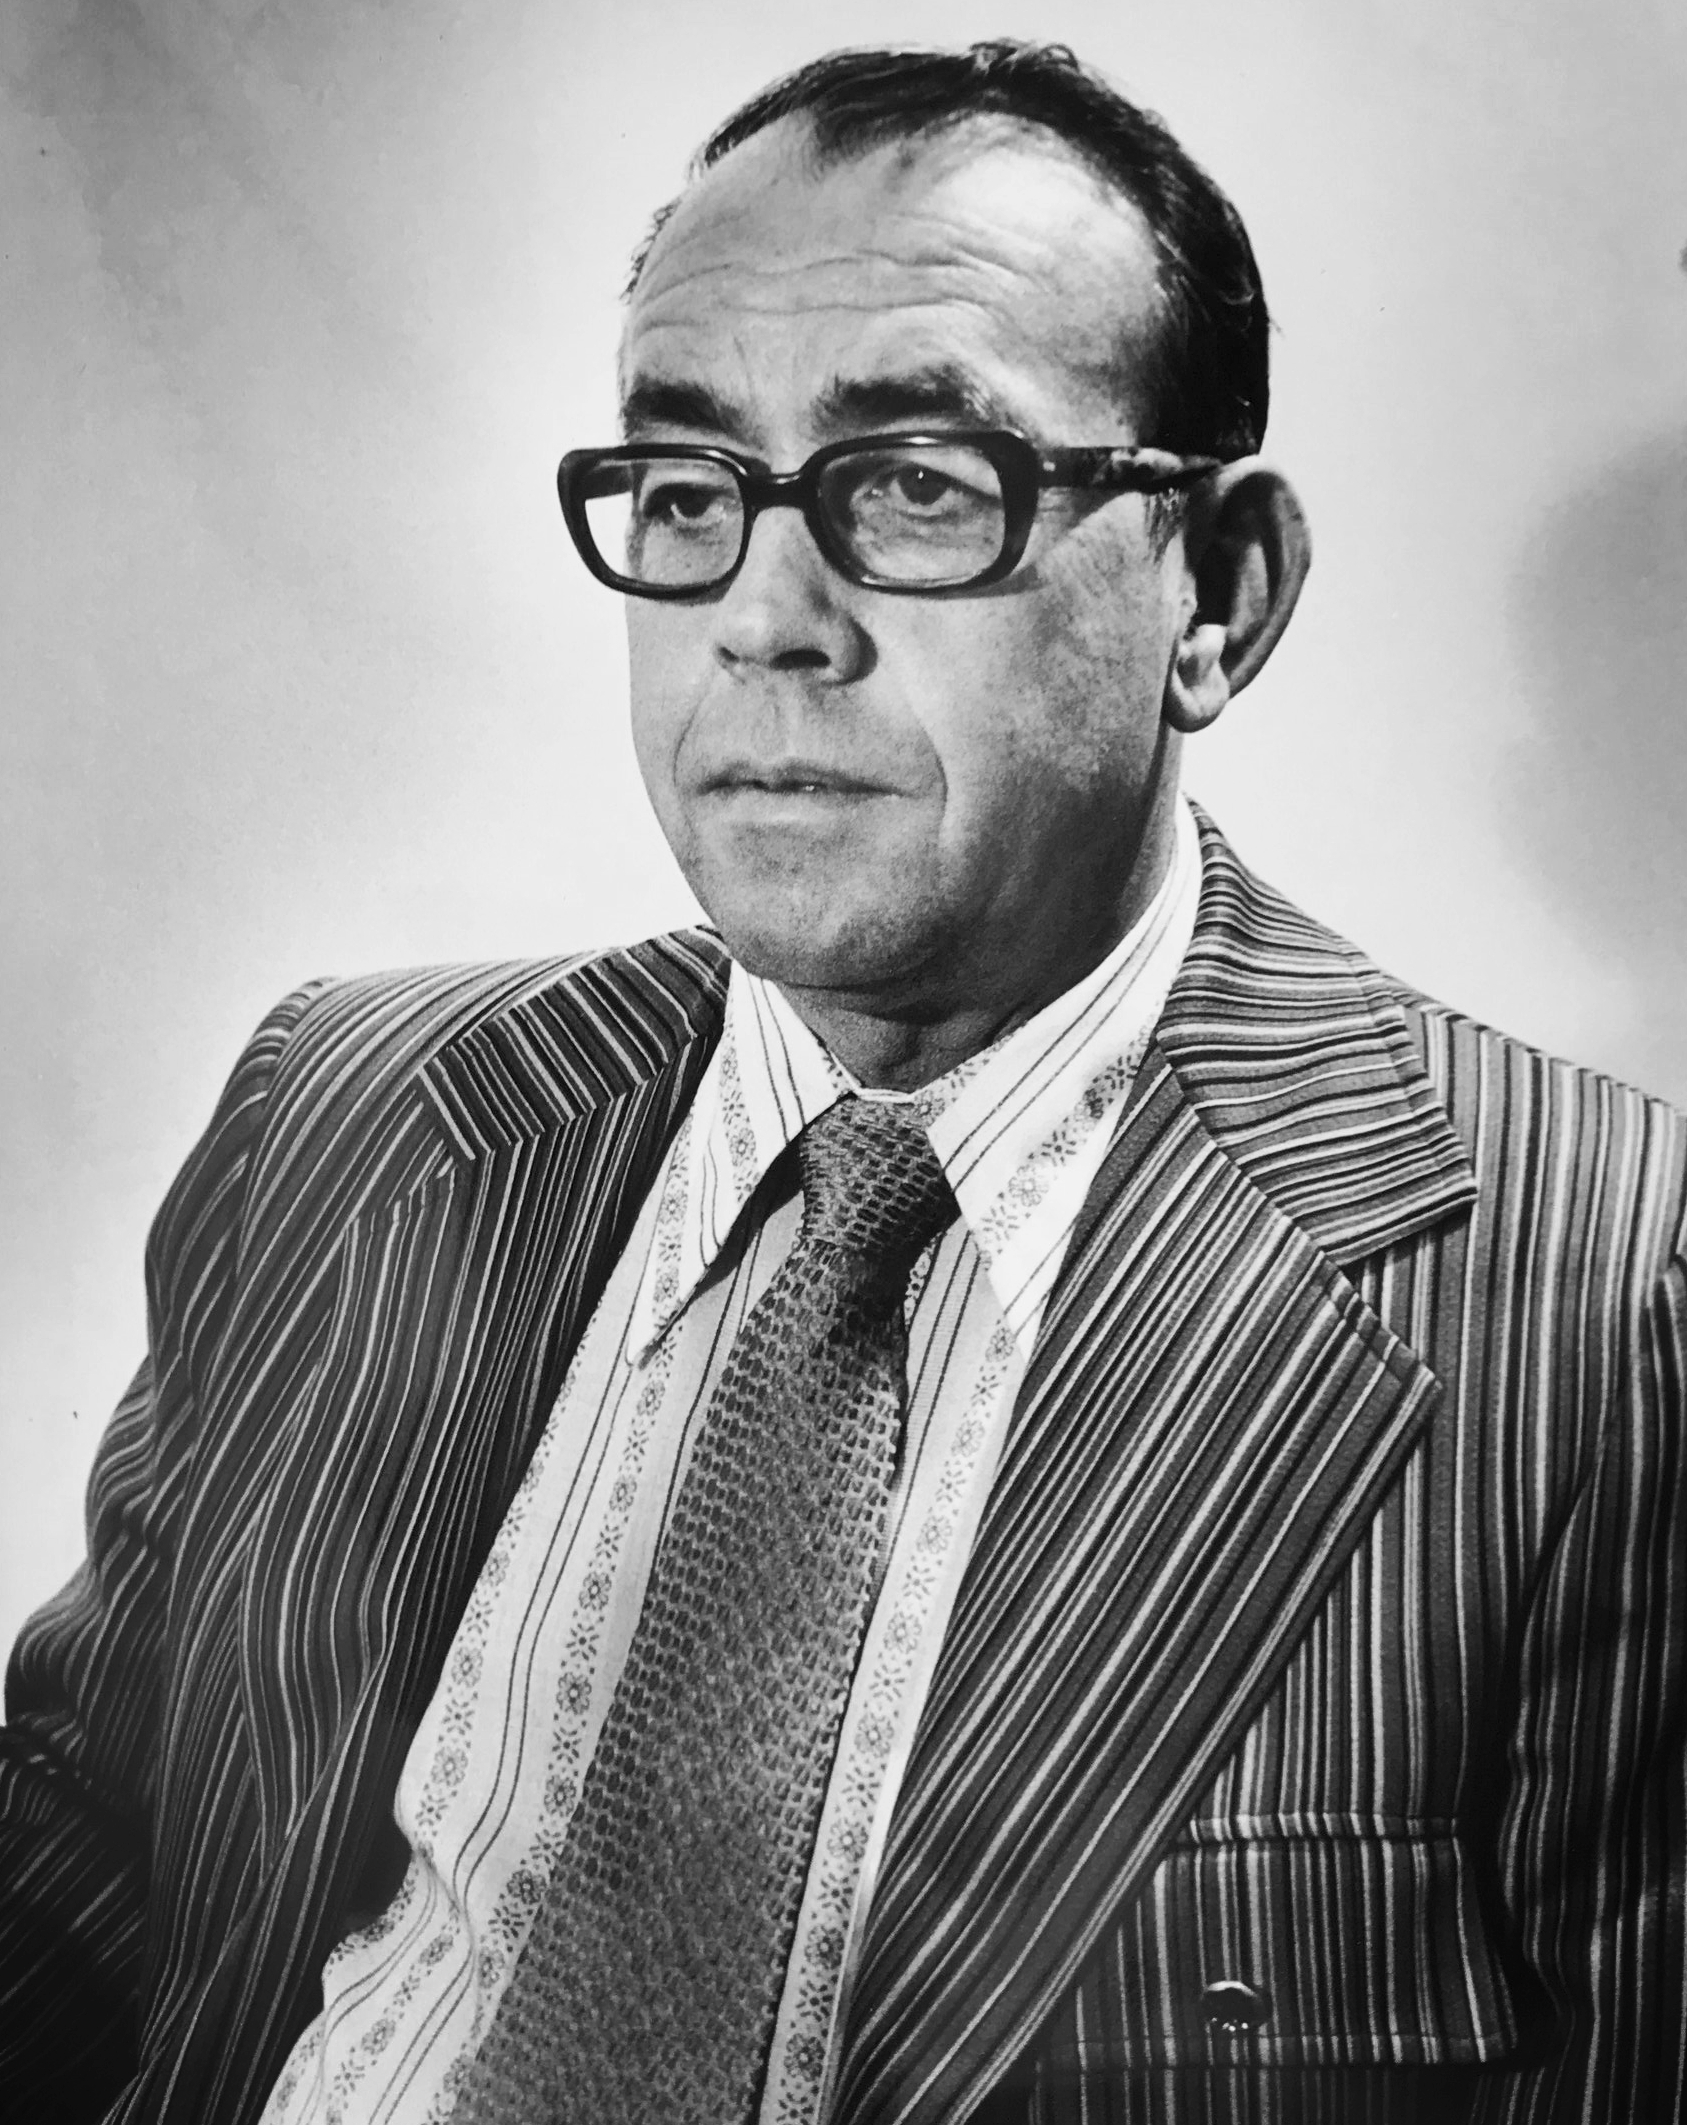 William R. Haley - Senior caseworker for Catholic Social, later promoted to Agency Director.